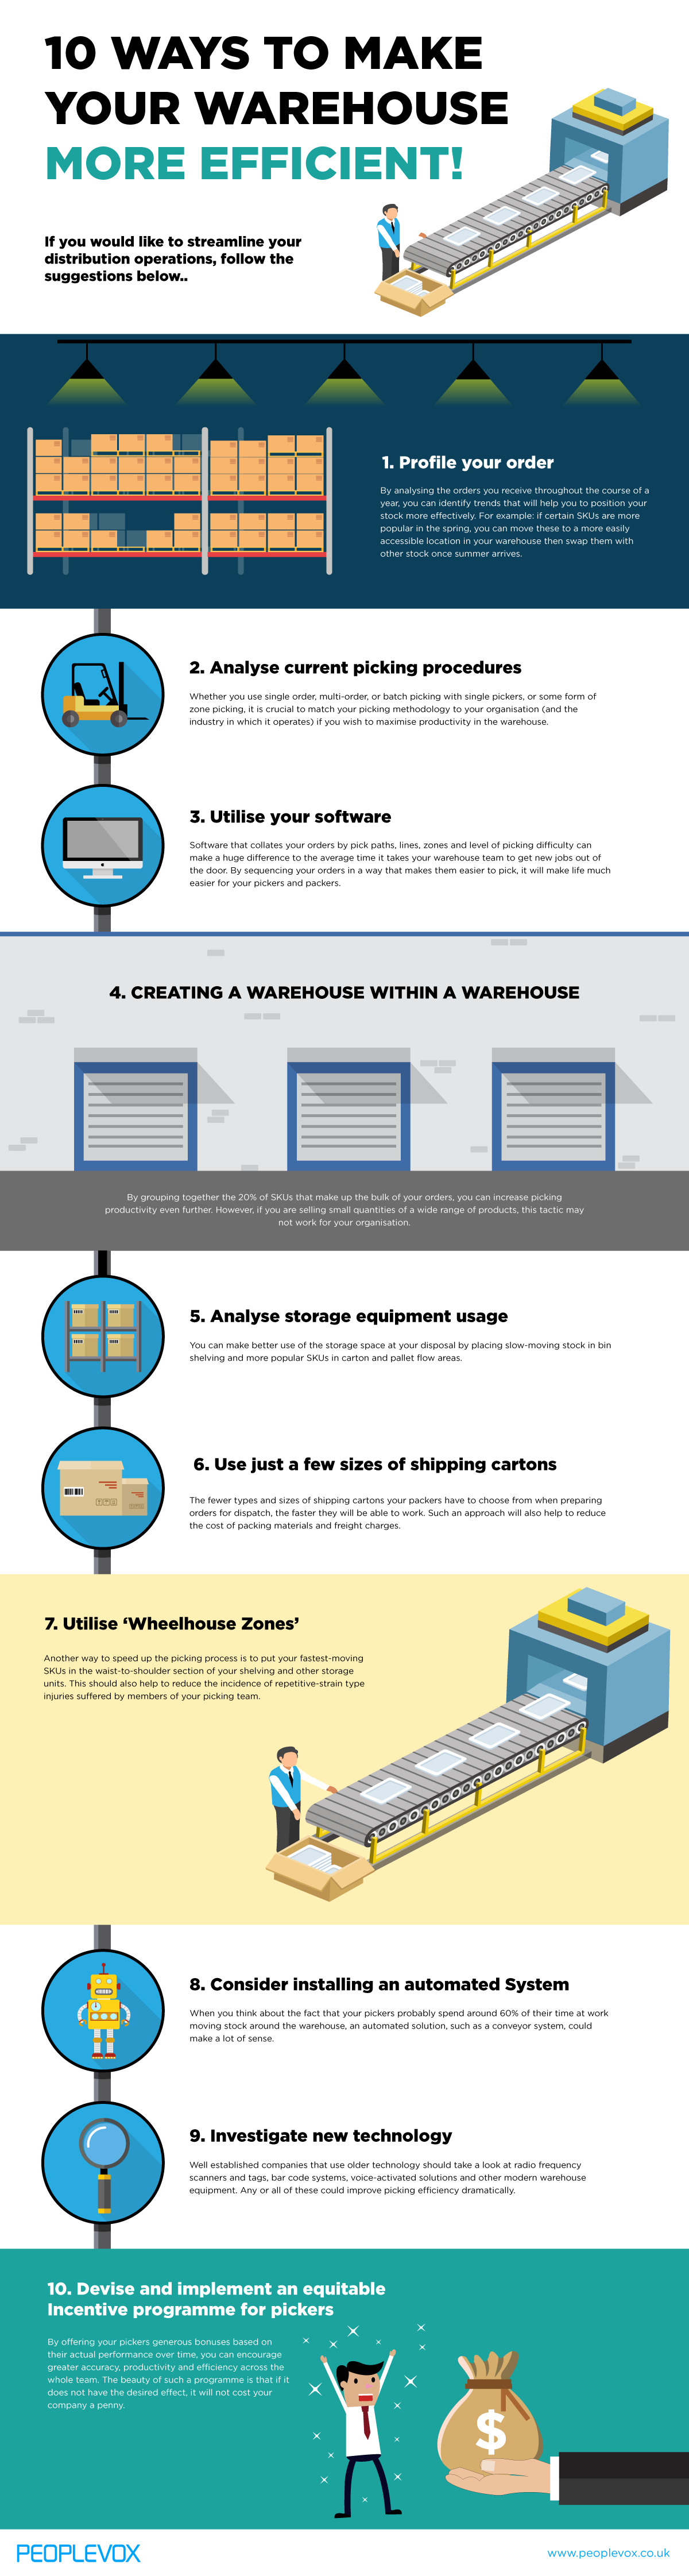 10-tips-to-warehouse